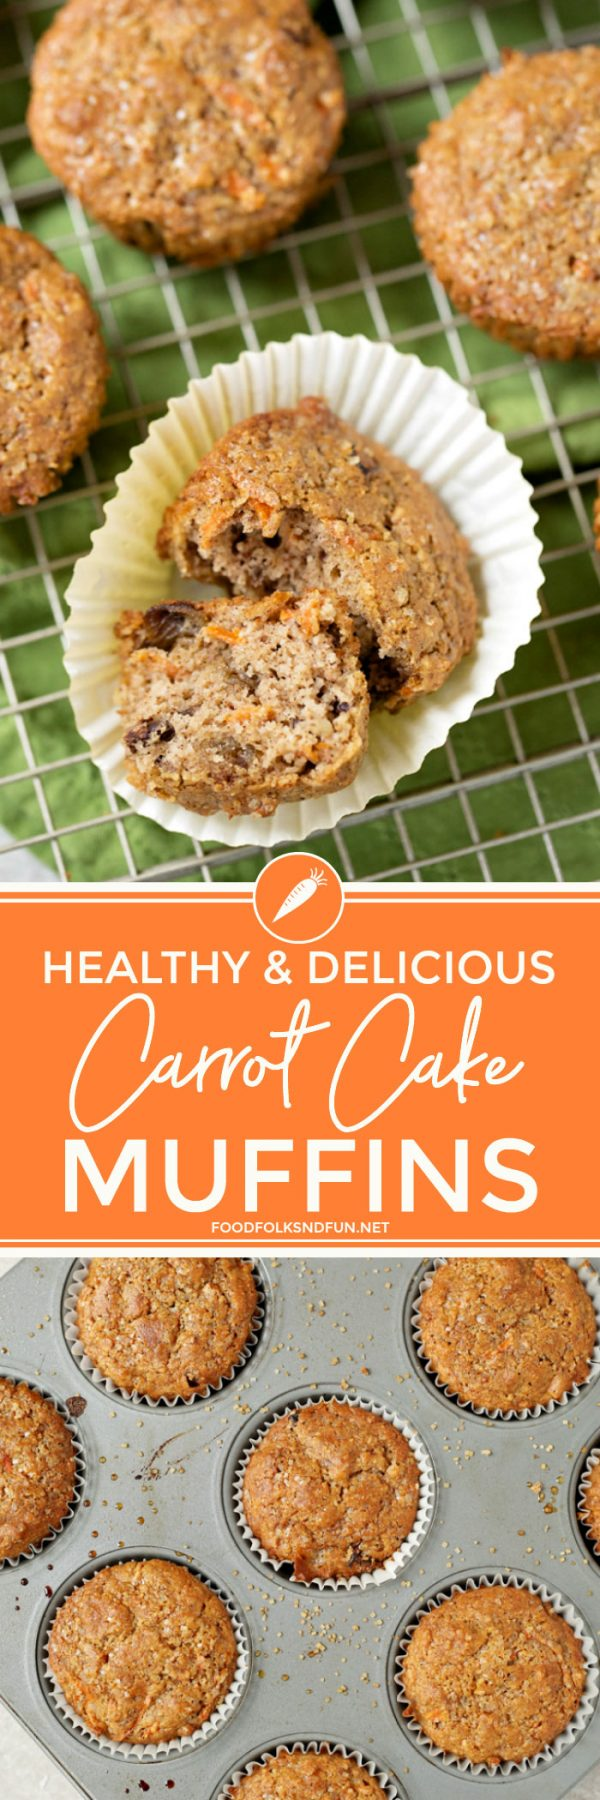 Amazing and Delicious Carrot Muffins via @foodfolksandfun